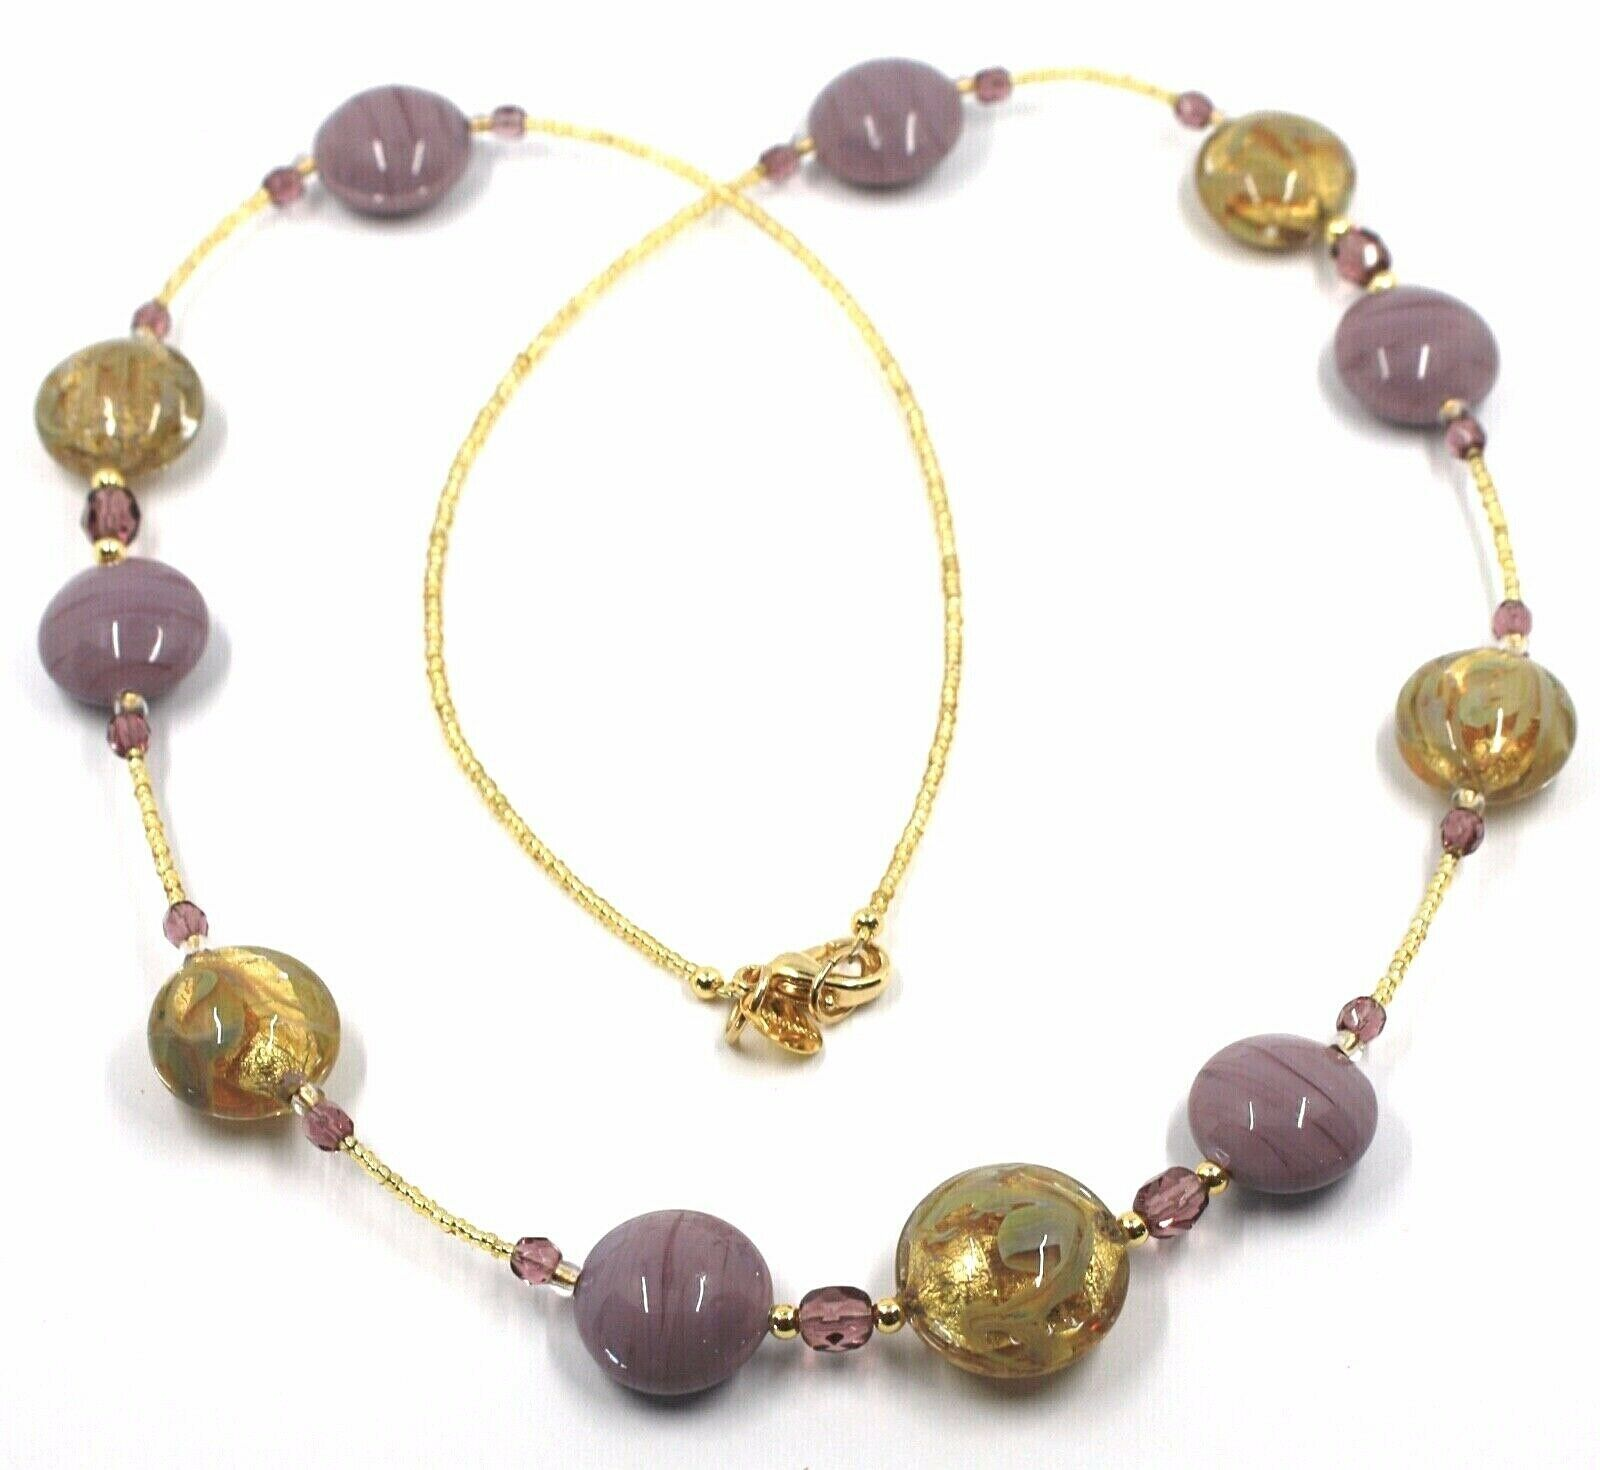 """LONG NECKLACE PURPLE YELLOW MURANO GLASS DISC GOLD LEAF, 70cm, 27.5"""" ITALY MADE"""